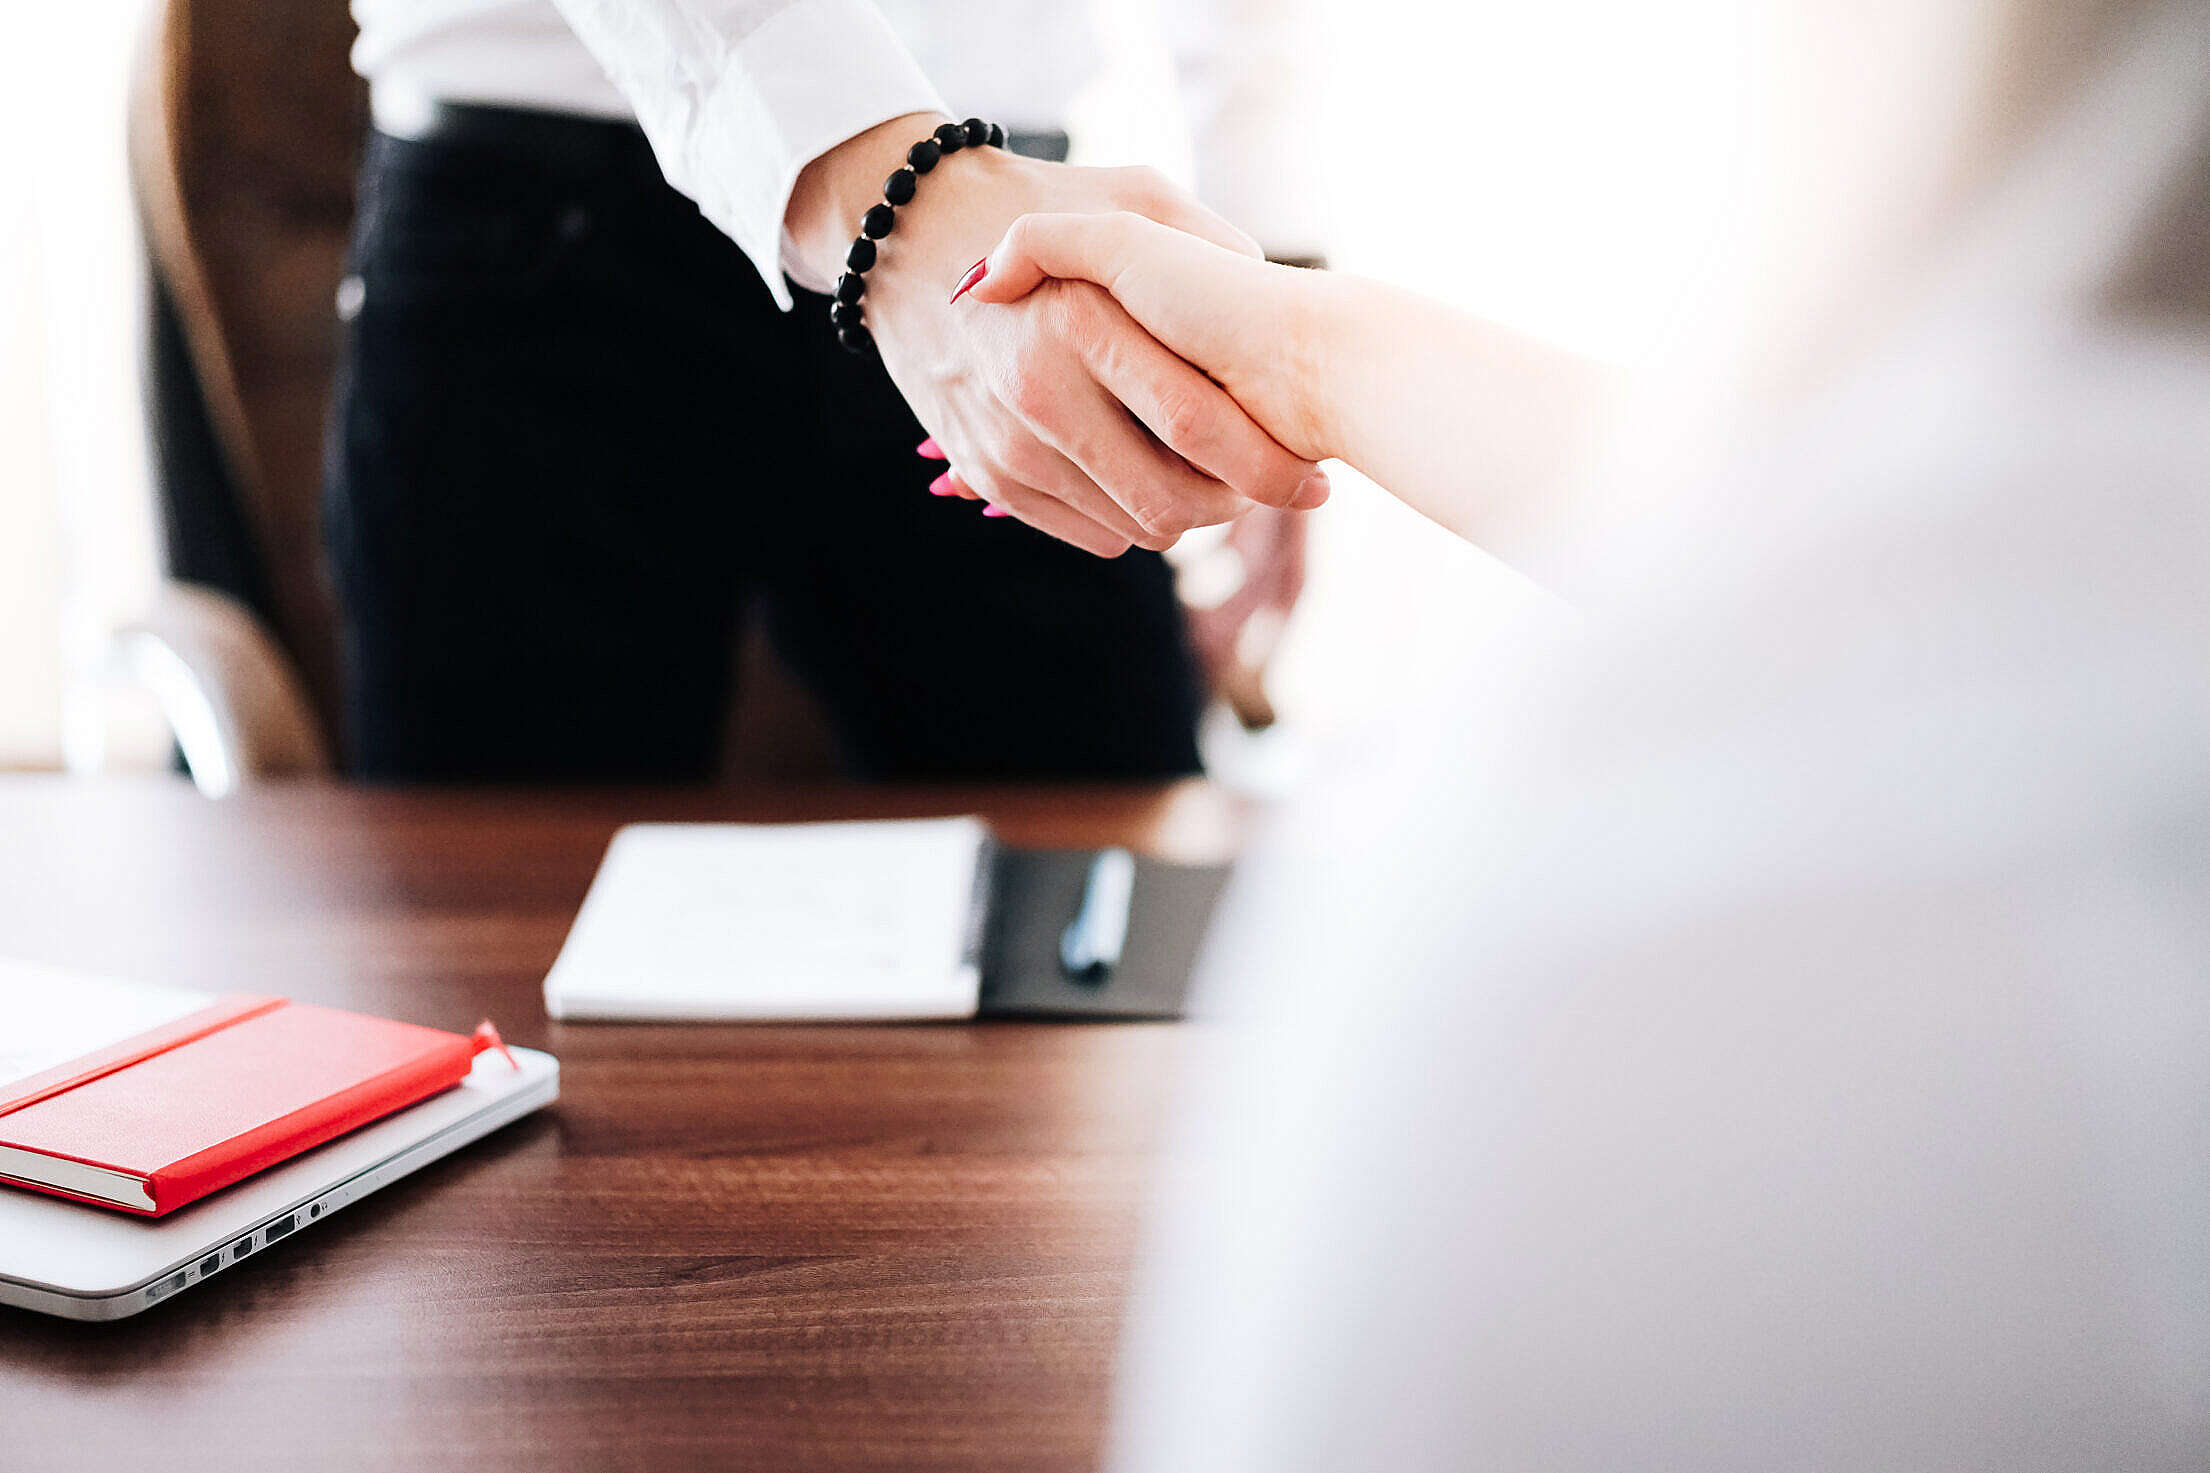 Business Man and Woman Handshake in Work Office Free Stock Photo